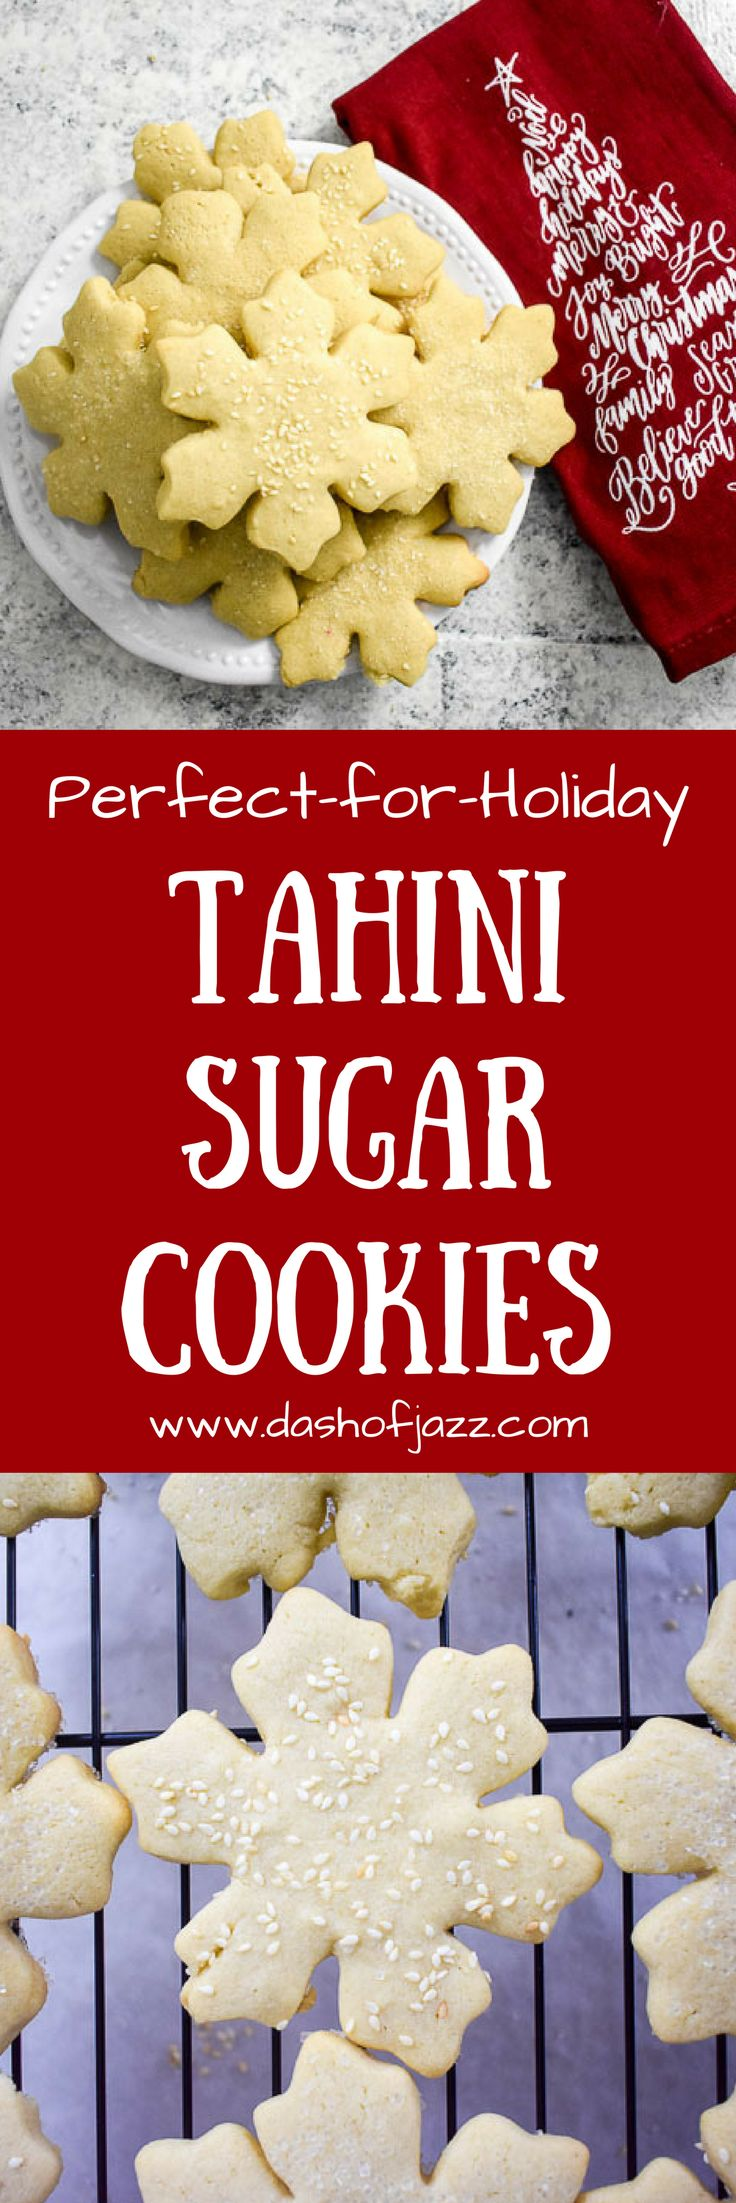 Uniquely-flavored tahini sugar cookies are perfect for the holidays or any time of year. Cut them out in your favorite shapes and enjoy the toasty tahini flavor that balances out the classic sugar cookie flavor. Recipe by Dash of Jazz via @dashofjazzblog